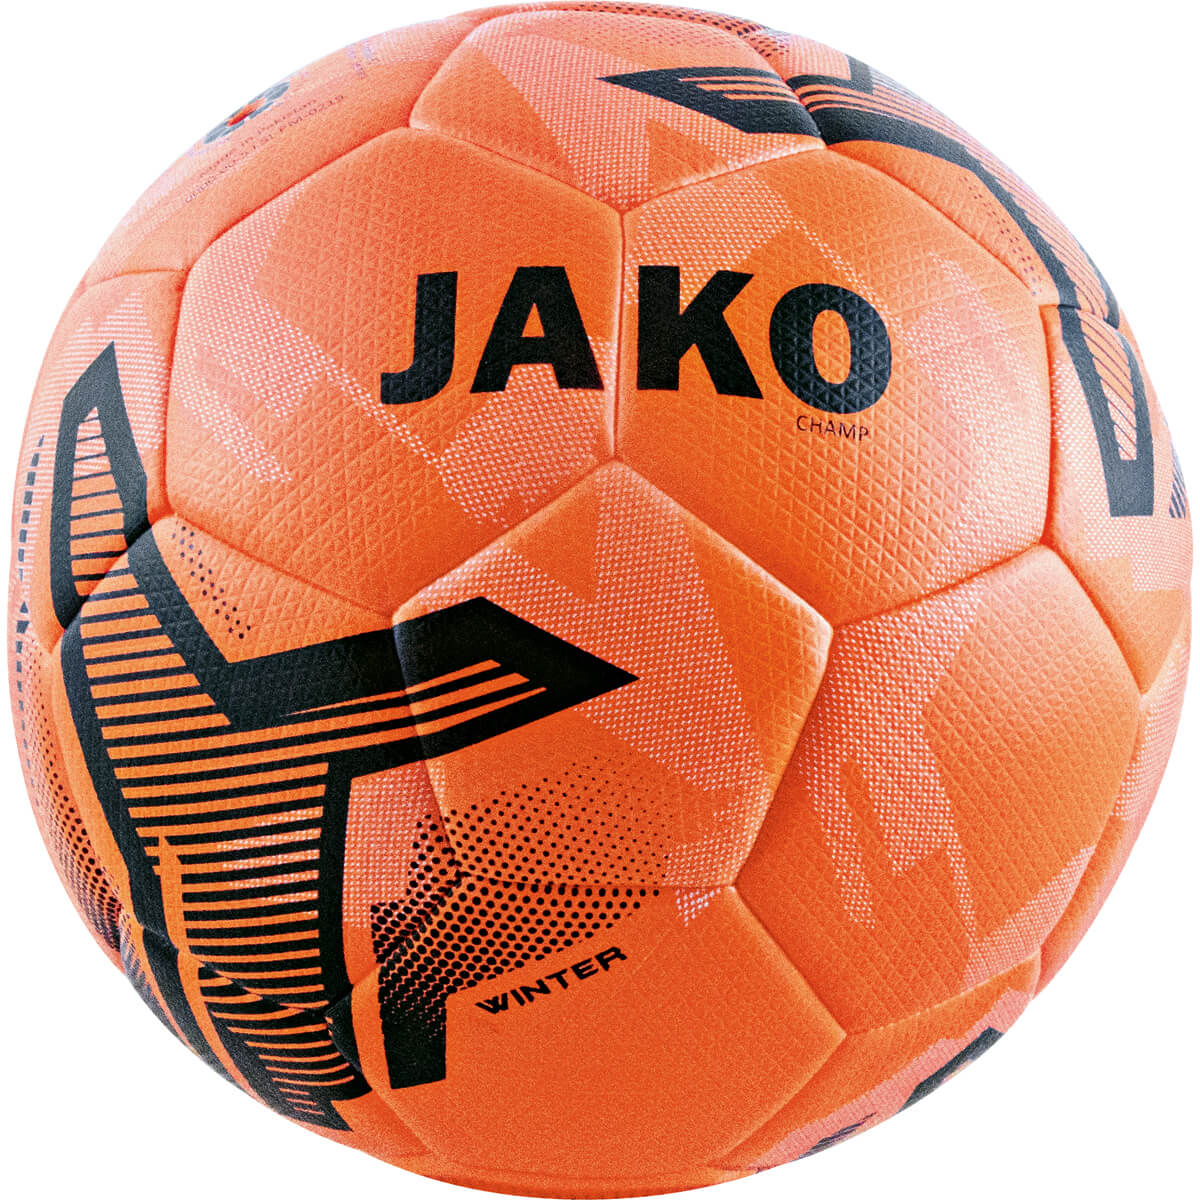 Ball Champ Winter -  | Jako 2358